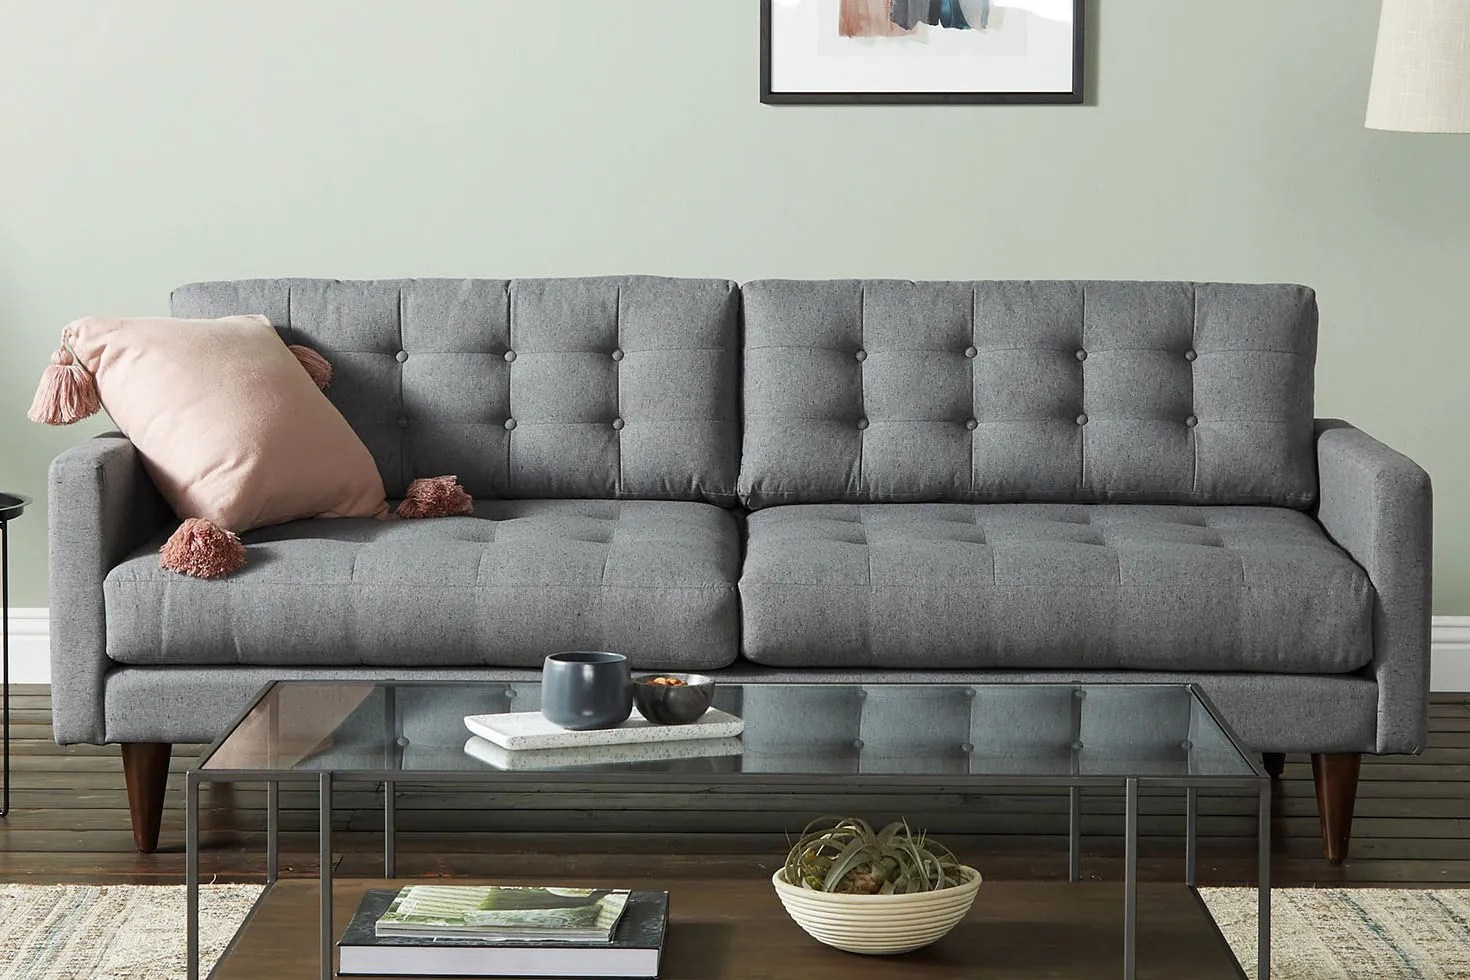 Sofa House Manufacturers 10 Best Flat Pack Sofas Campaign Joybird Burrow 2019